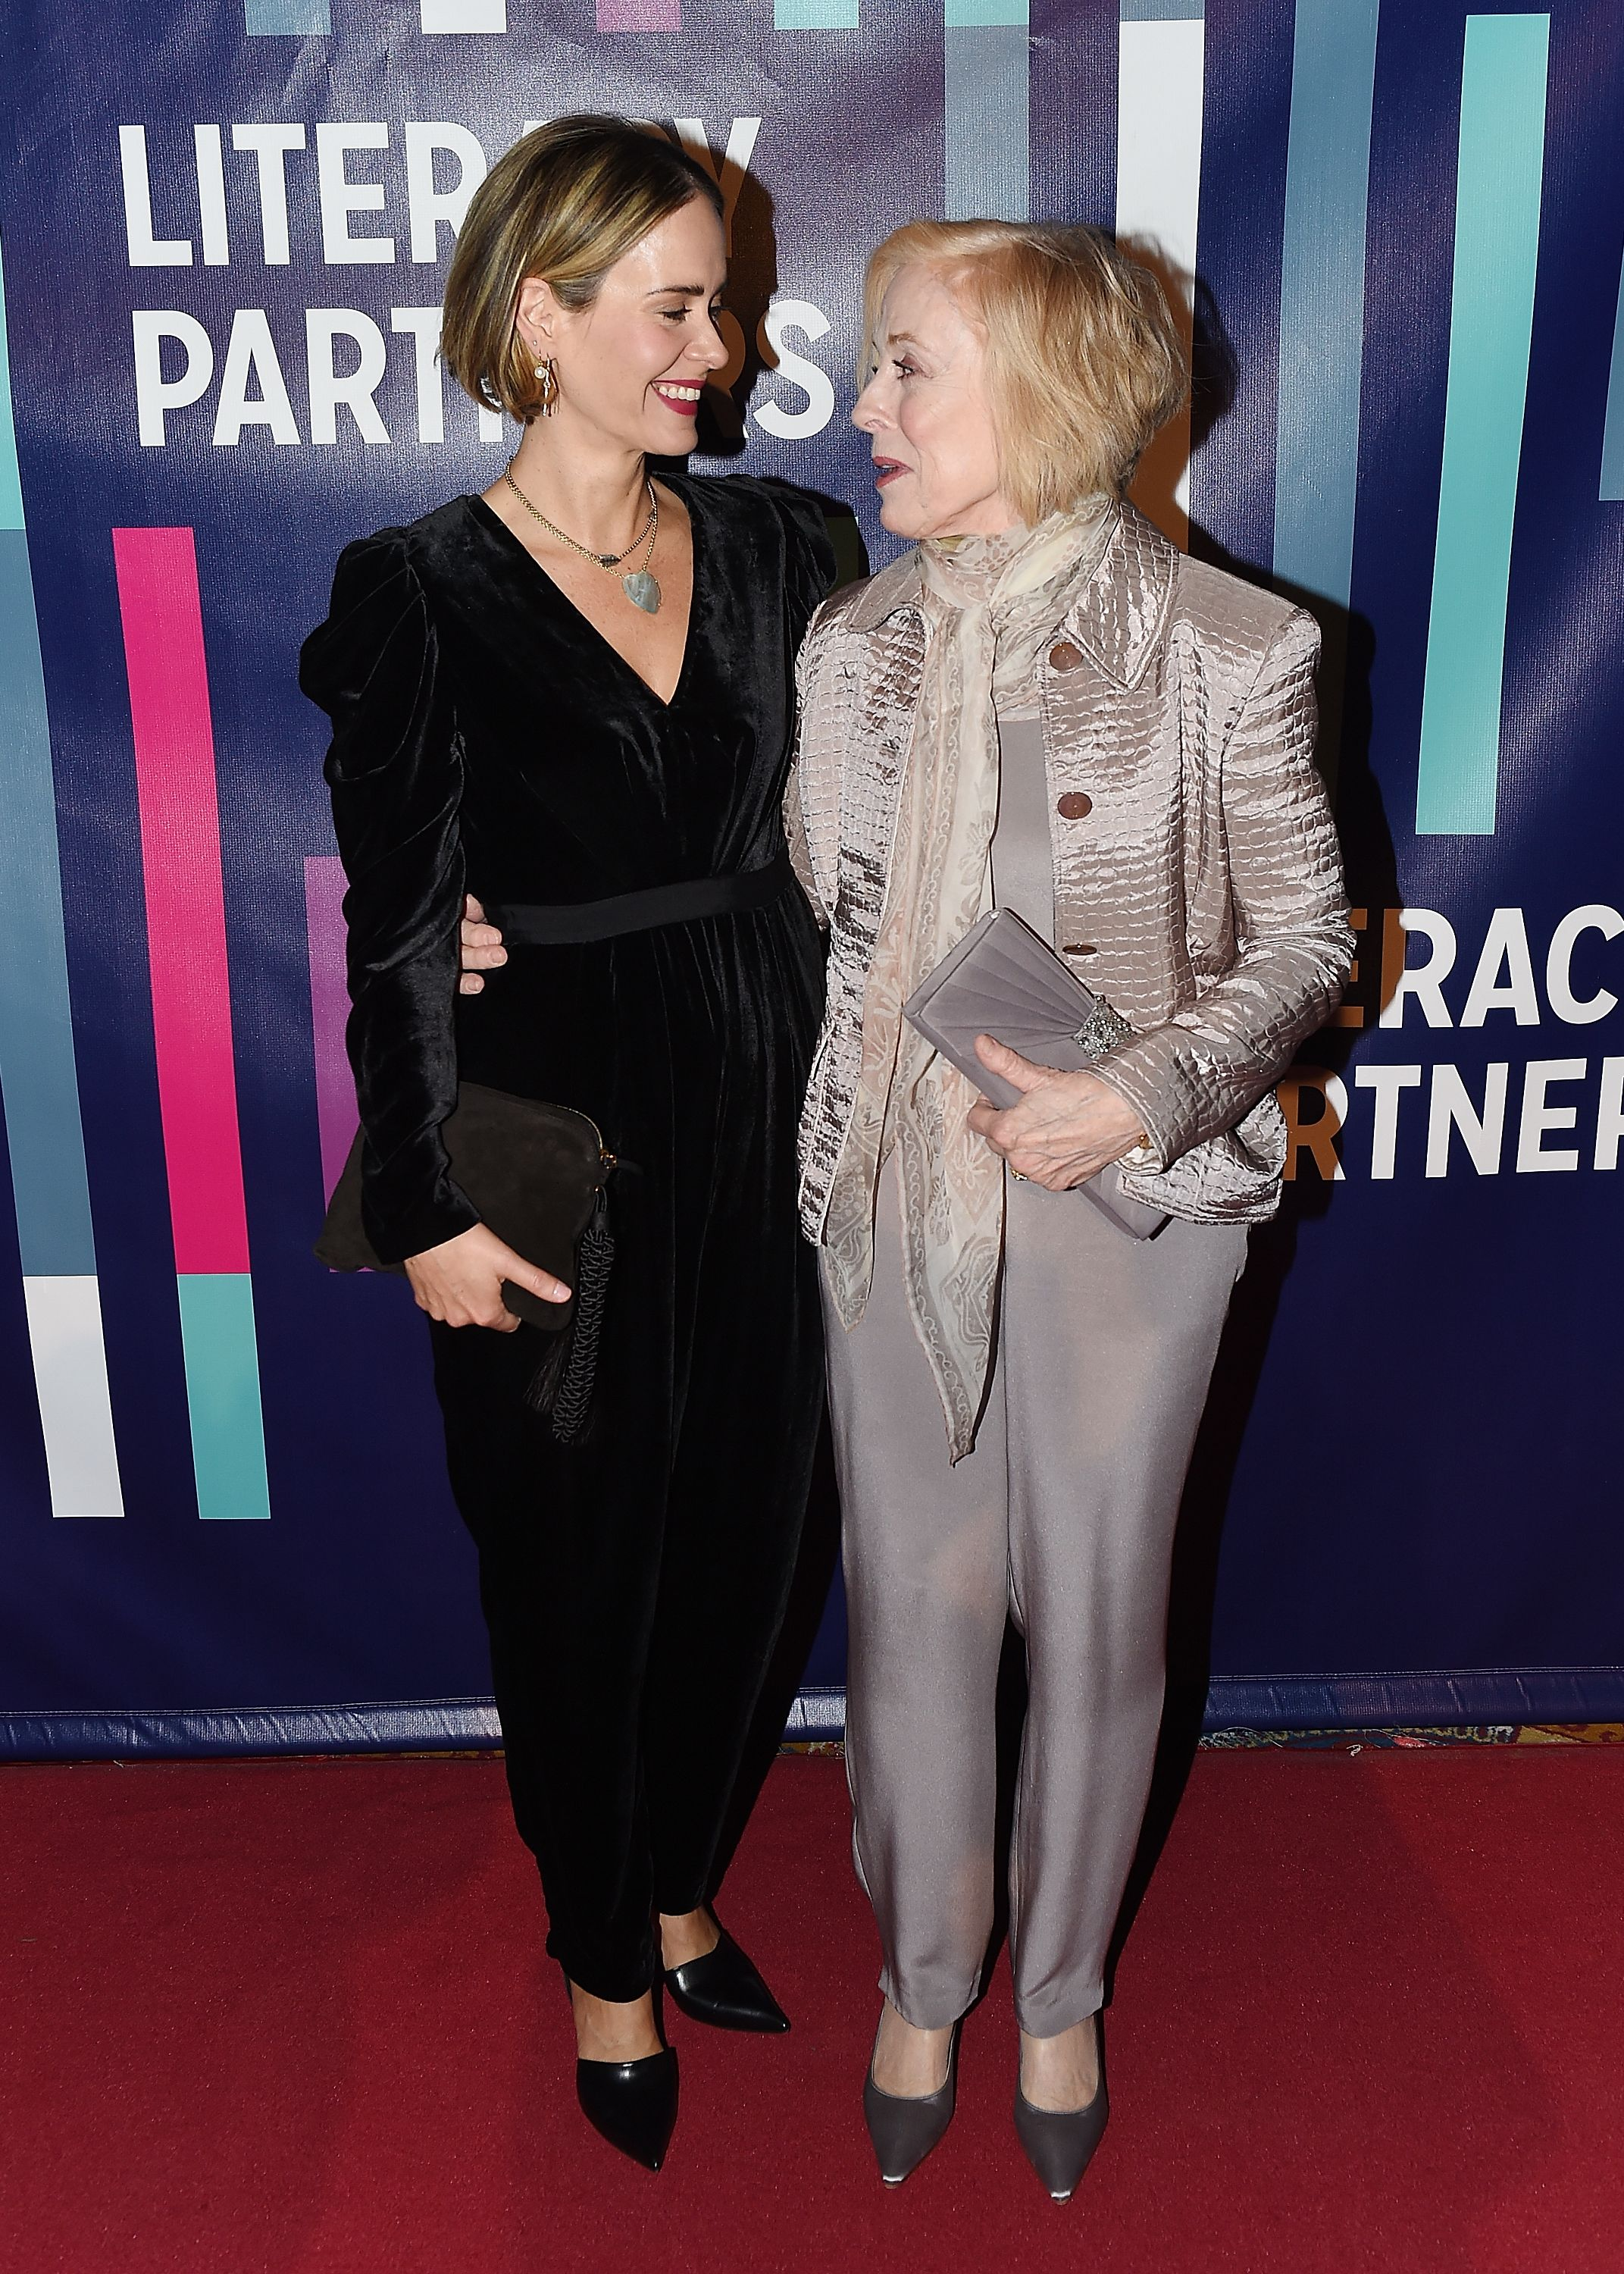 Sarah Paulson and Holland Taylor attend the 2018 Literacy Partners Gala. | Source: Getty Images